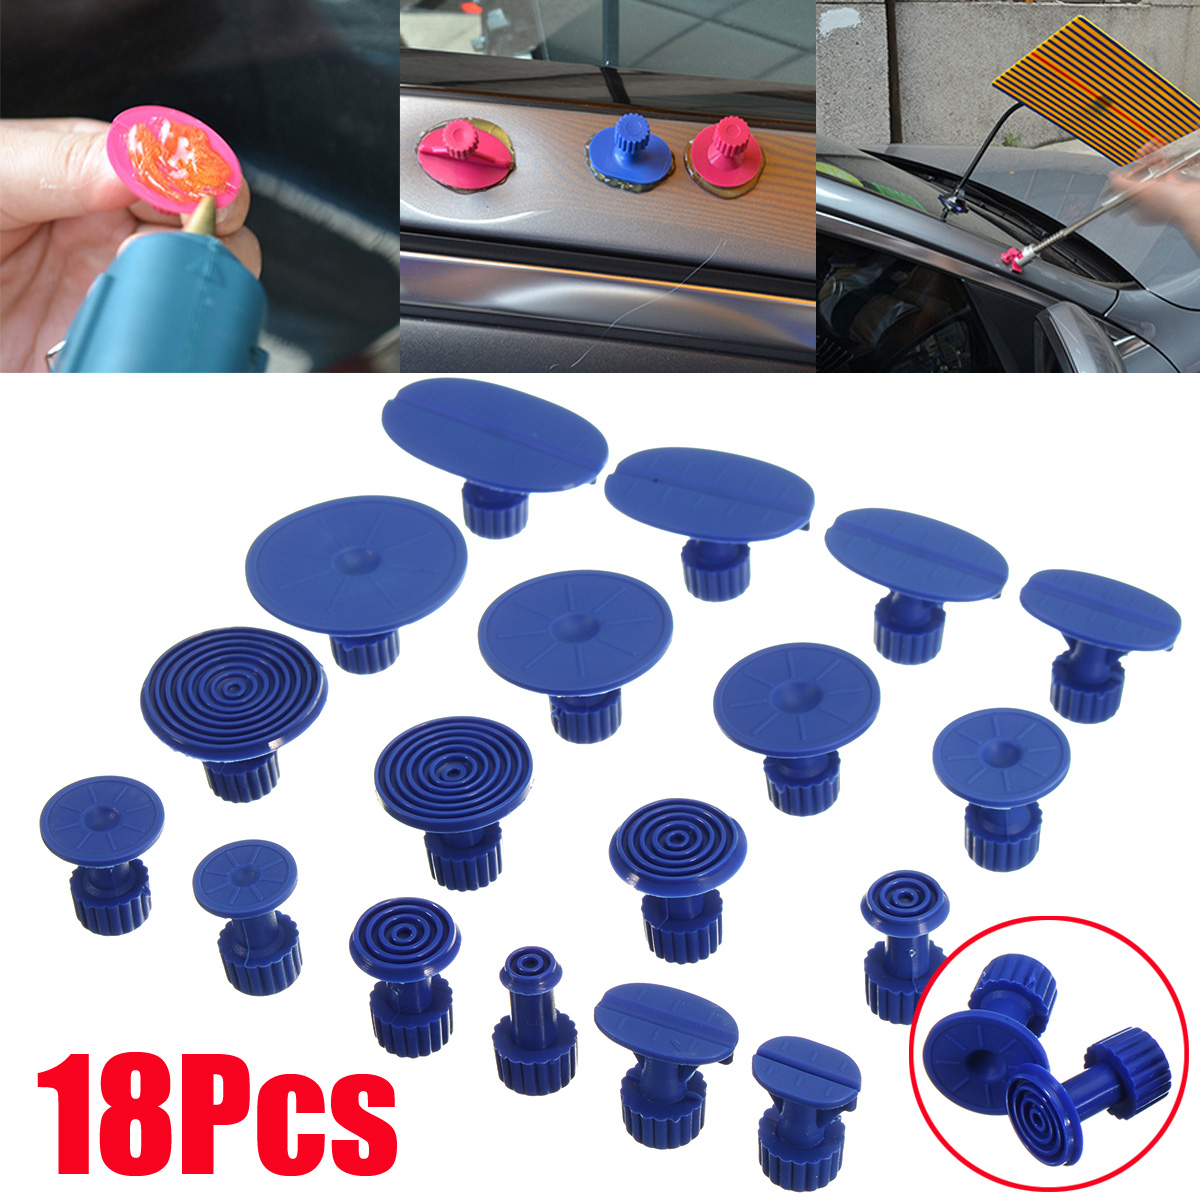 18PCS Paintless Dent Puller Lifter Body Glue Gun Repair Hail Removal pdr Tool Kit